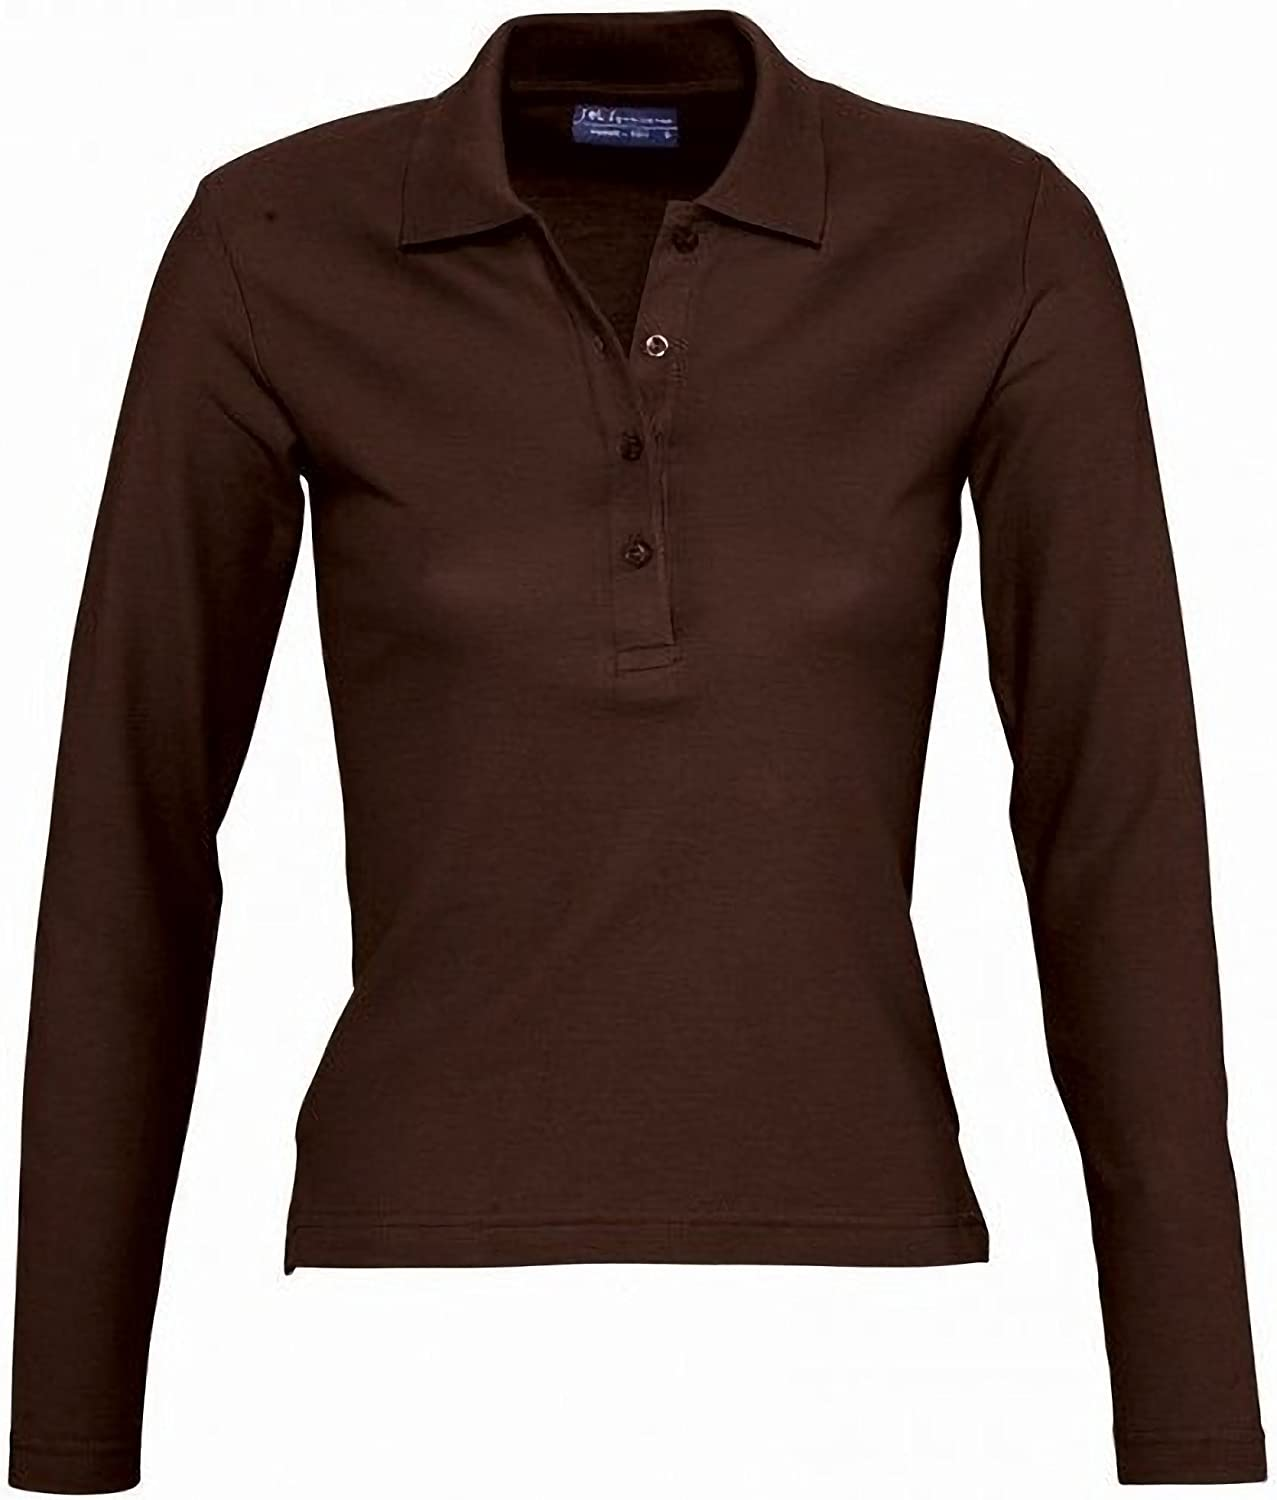 SOLS Podium Damen Pique Polo-Shirt Langarm